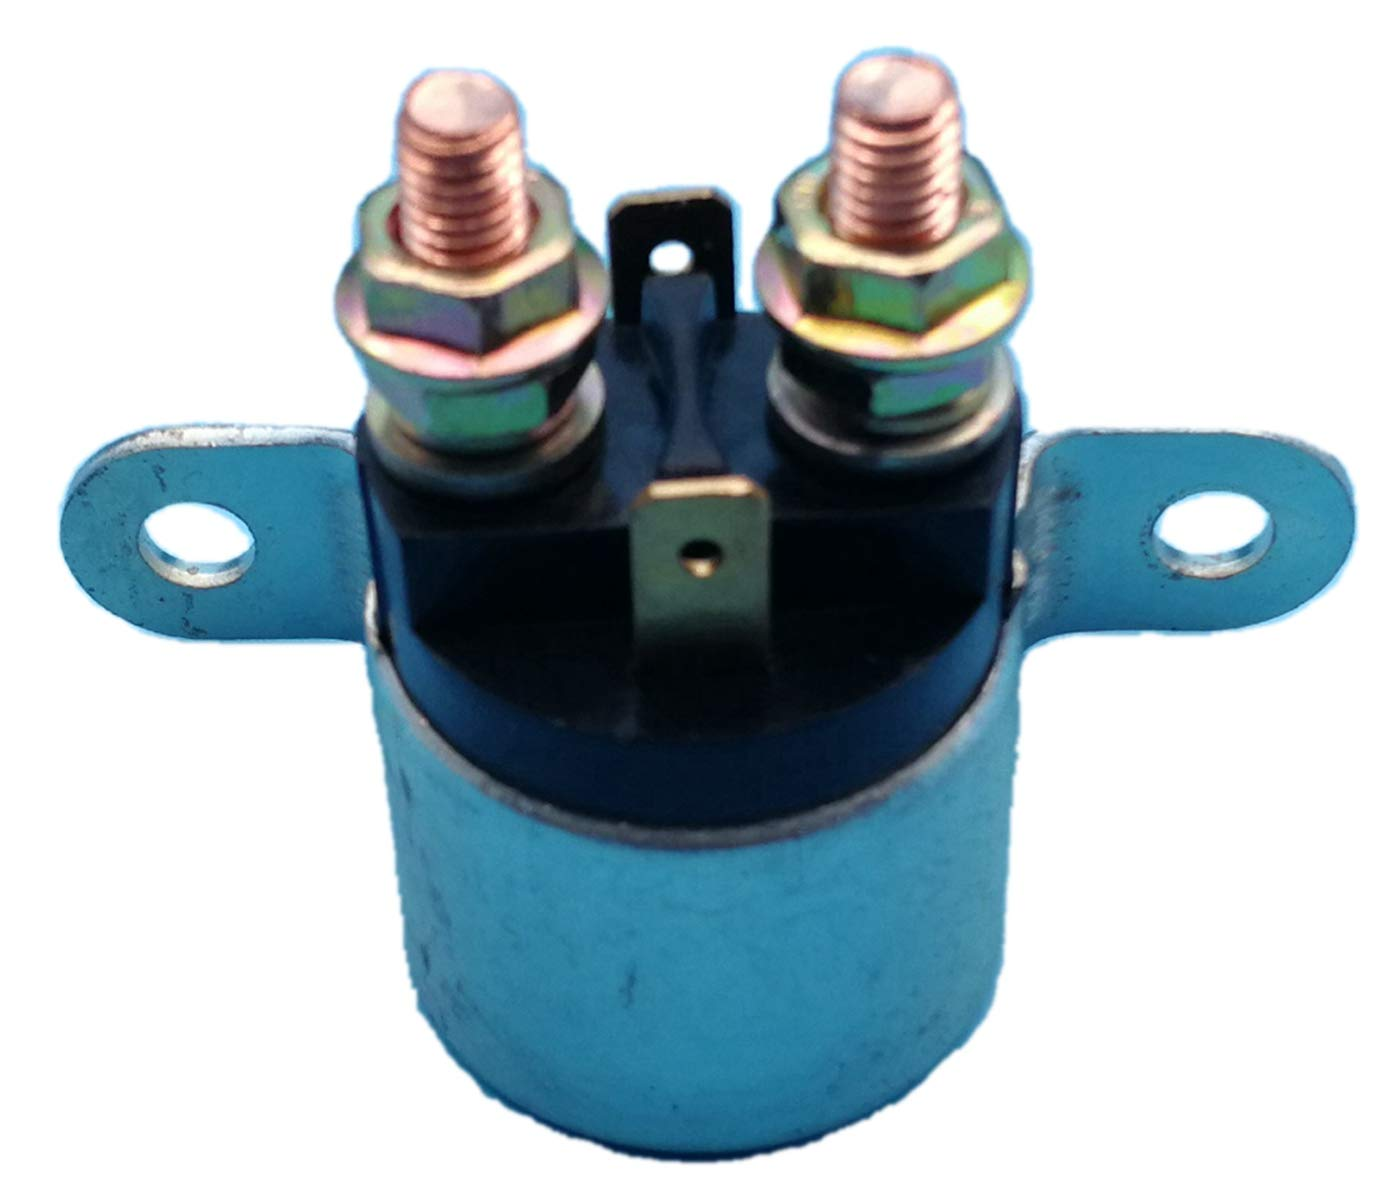 Tuzliufi Replace Starter Solenoid Relay BMW Off-road St Motorcycle F650GS Bombardier F650 F650CS F650GS F650ST F650SE F800S F800ST DS650 Outlander 330 400 650 800 Quest 500 175 Traxter Max XT XL Z256